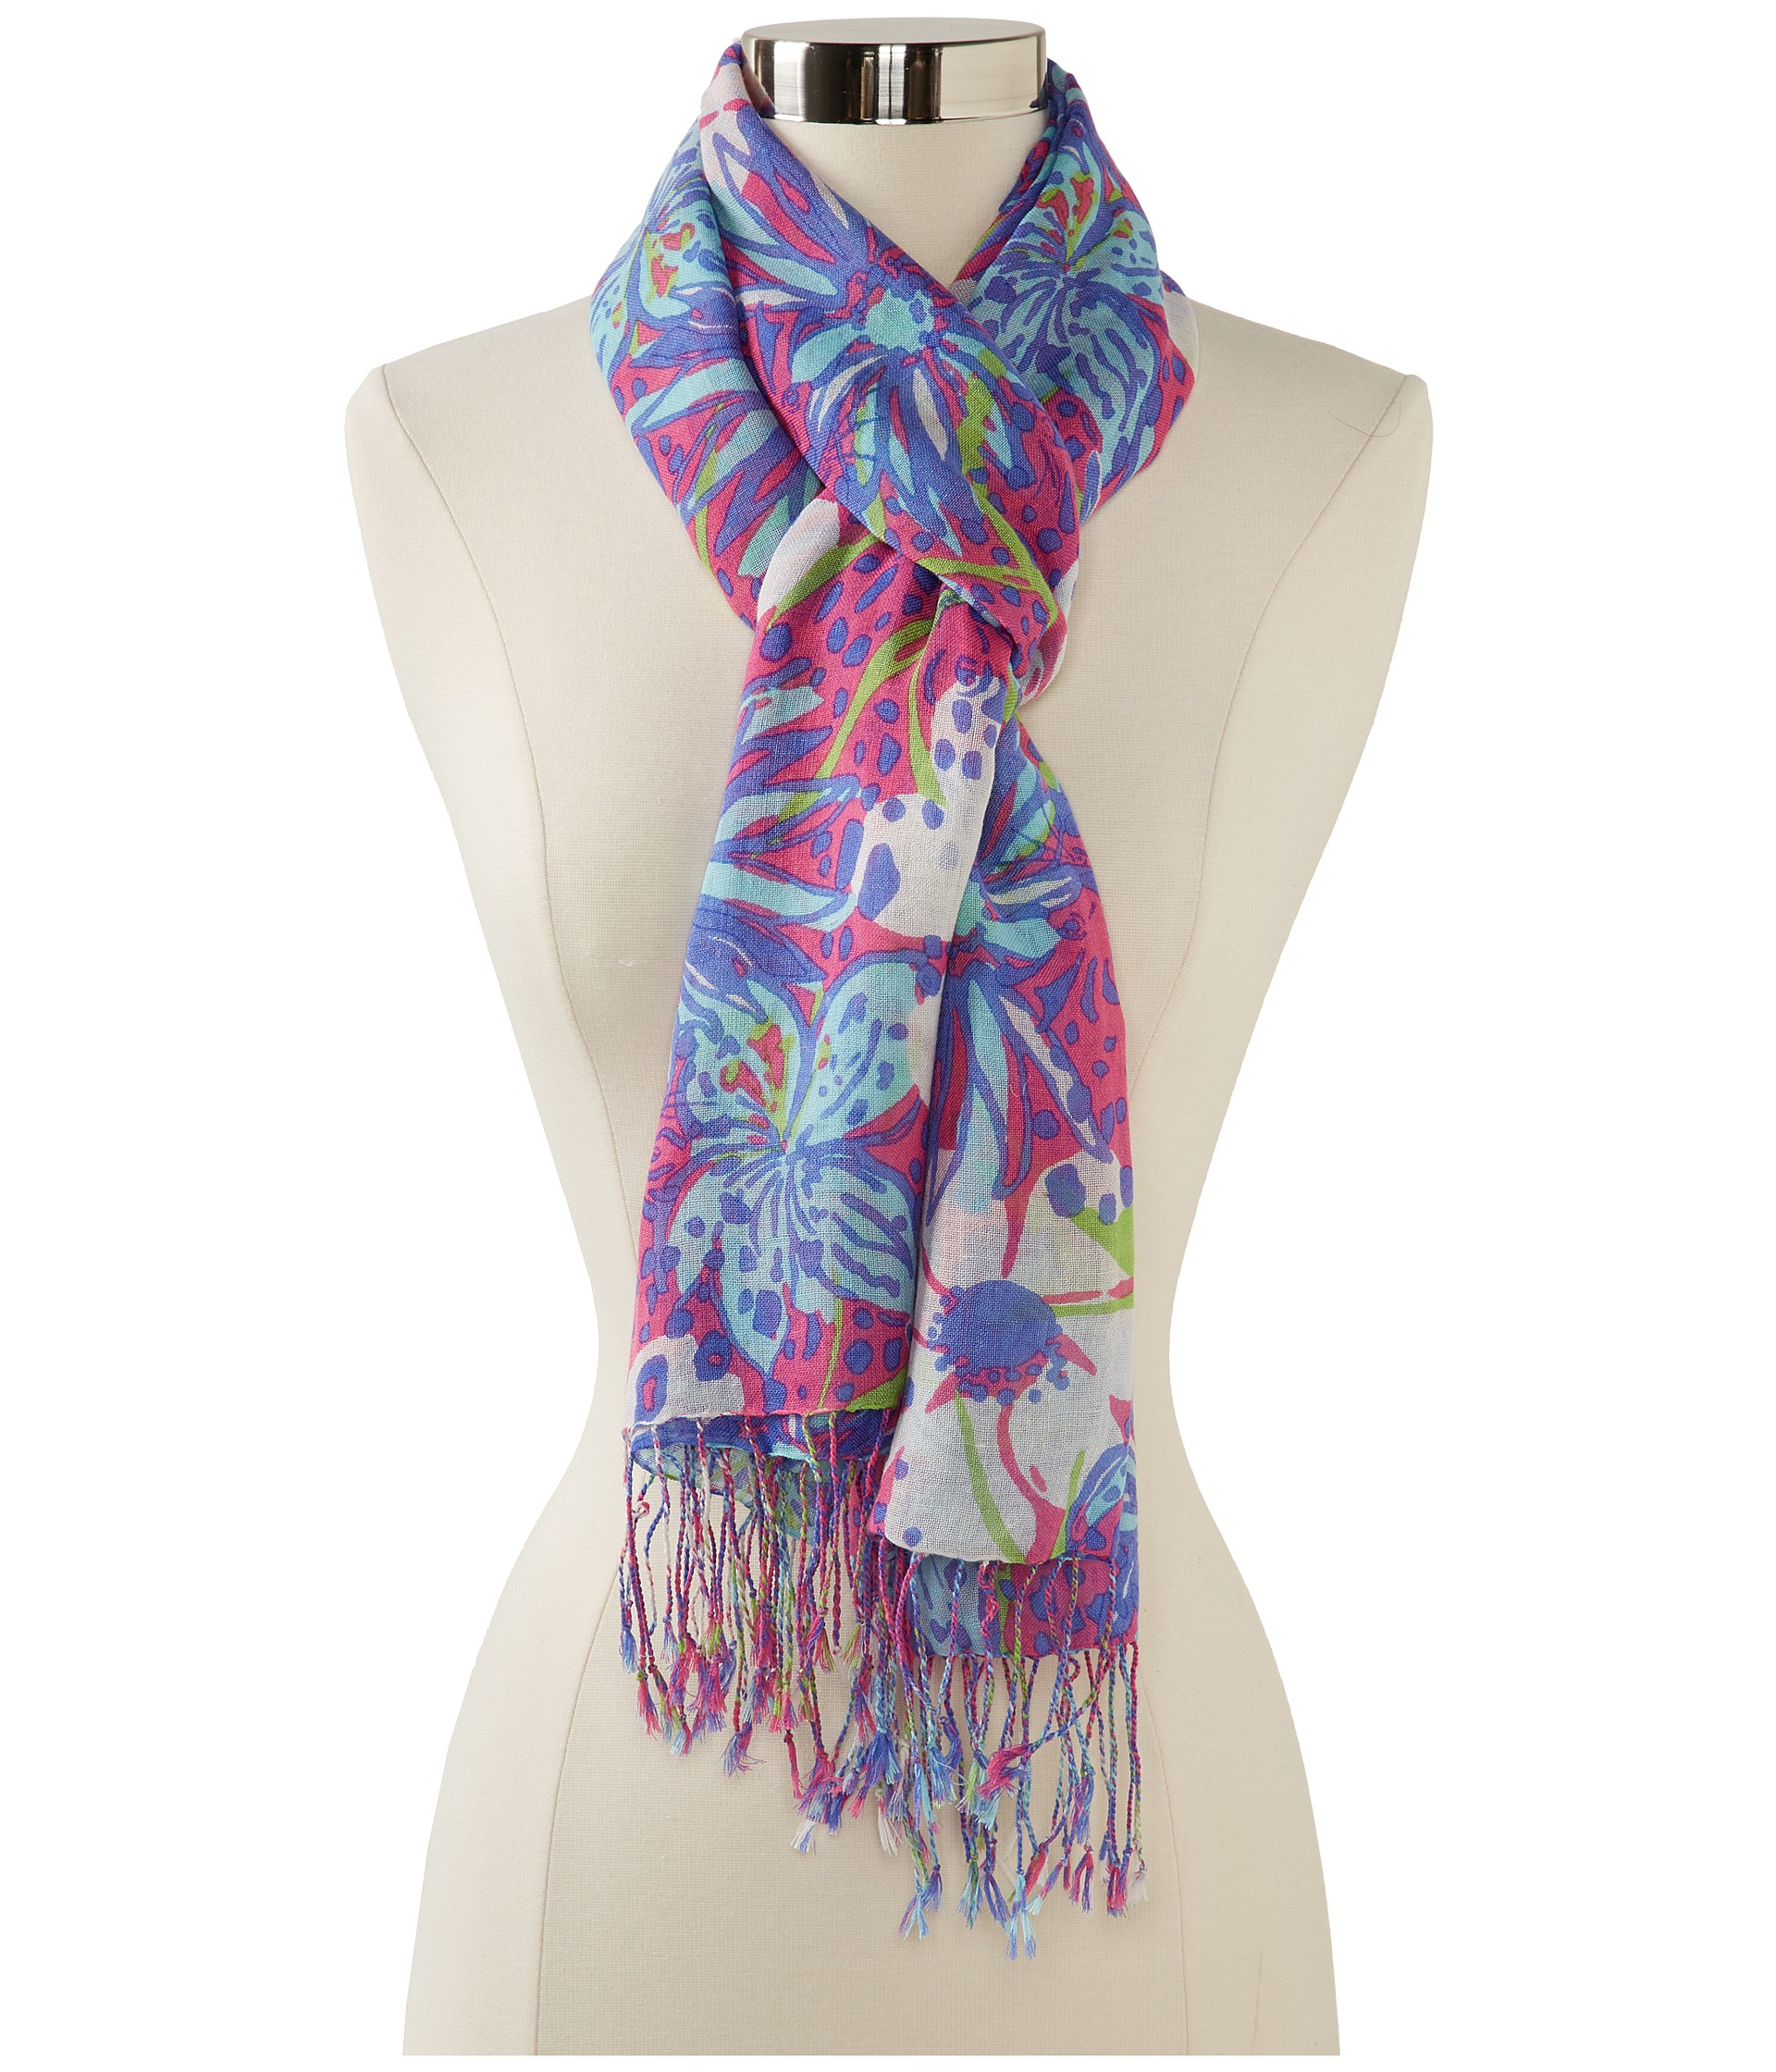 Details about Lilly Pulitzer Murfee Scarf - LETS CHA CHA $ Cashmere silk. Lilly Pulitzer Murfee Scarf - LETS CHA CHA $ Cashmere silk | Add to watch list. Buyers may be subject to additional charges for customs clearance. Visit eBay's page on international trade. Item location: China, China. .